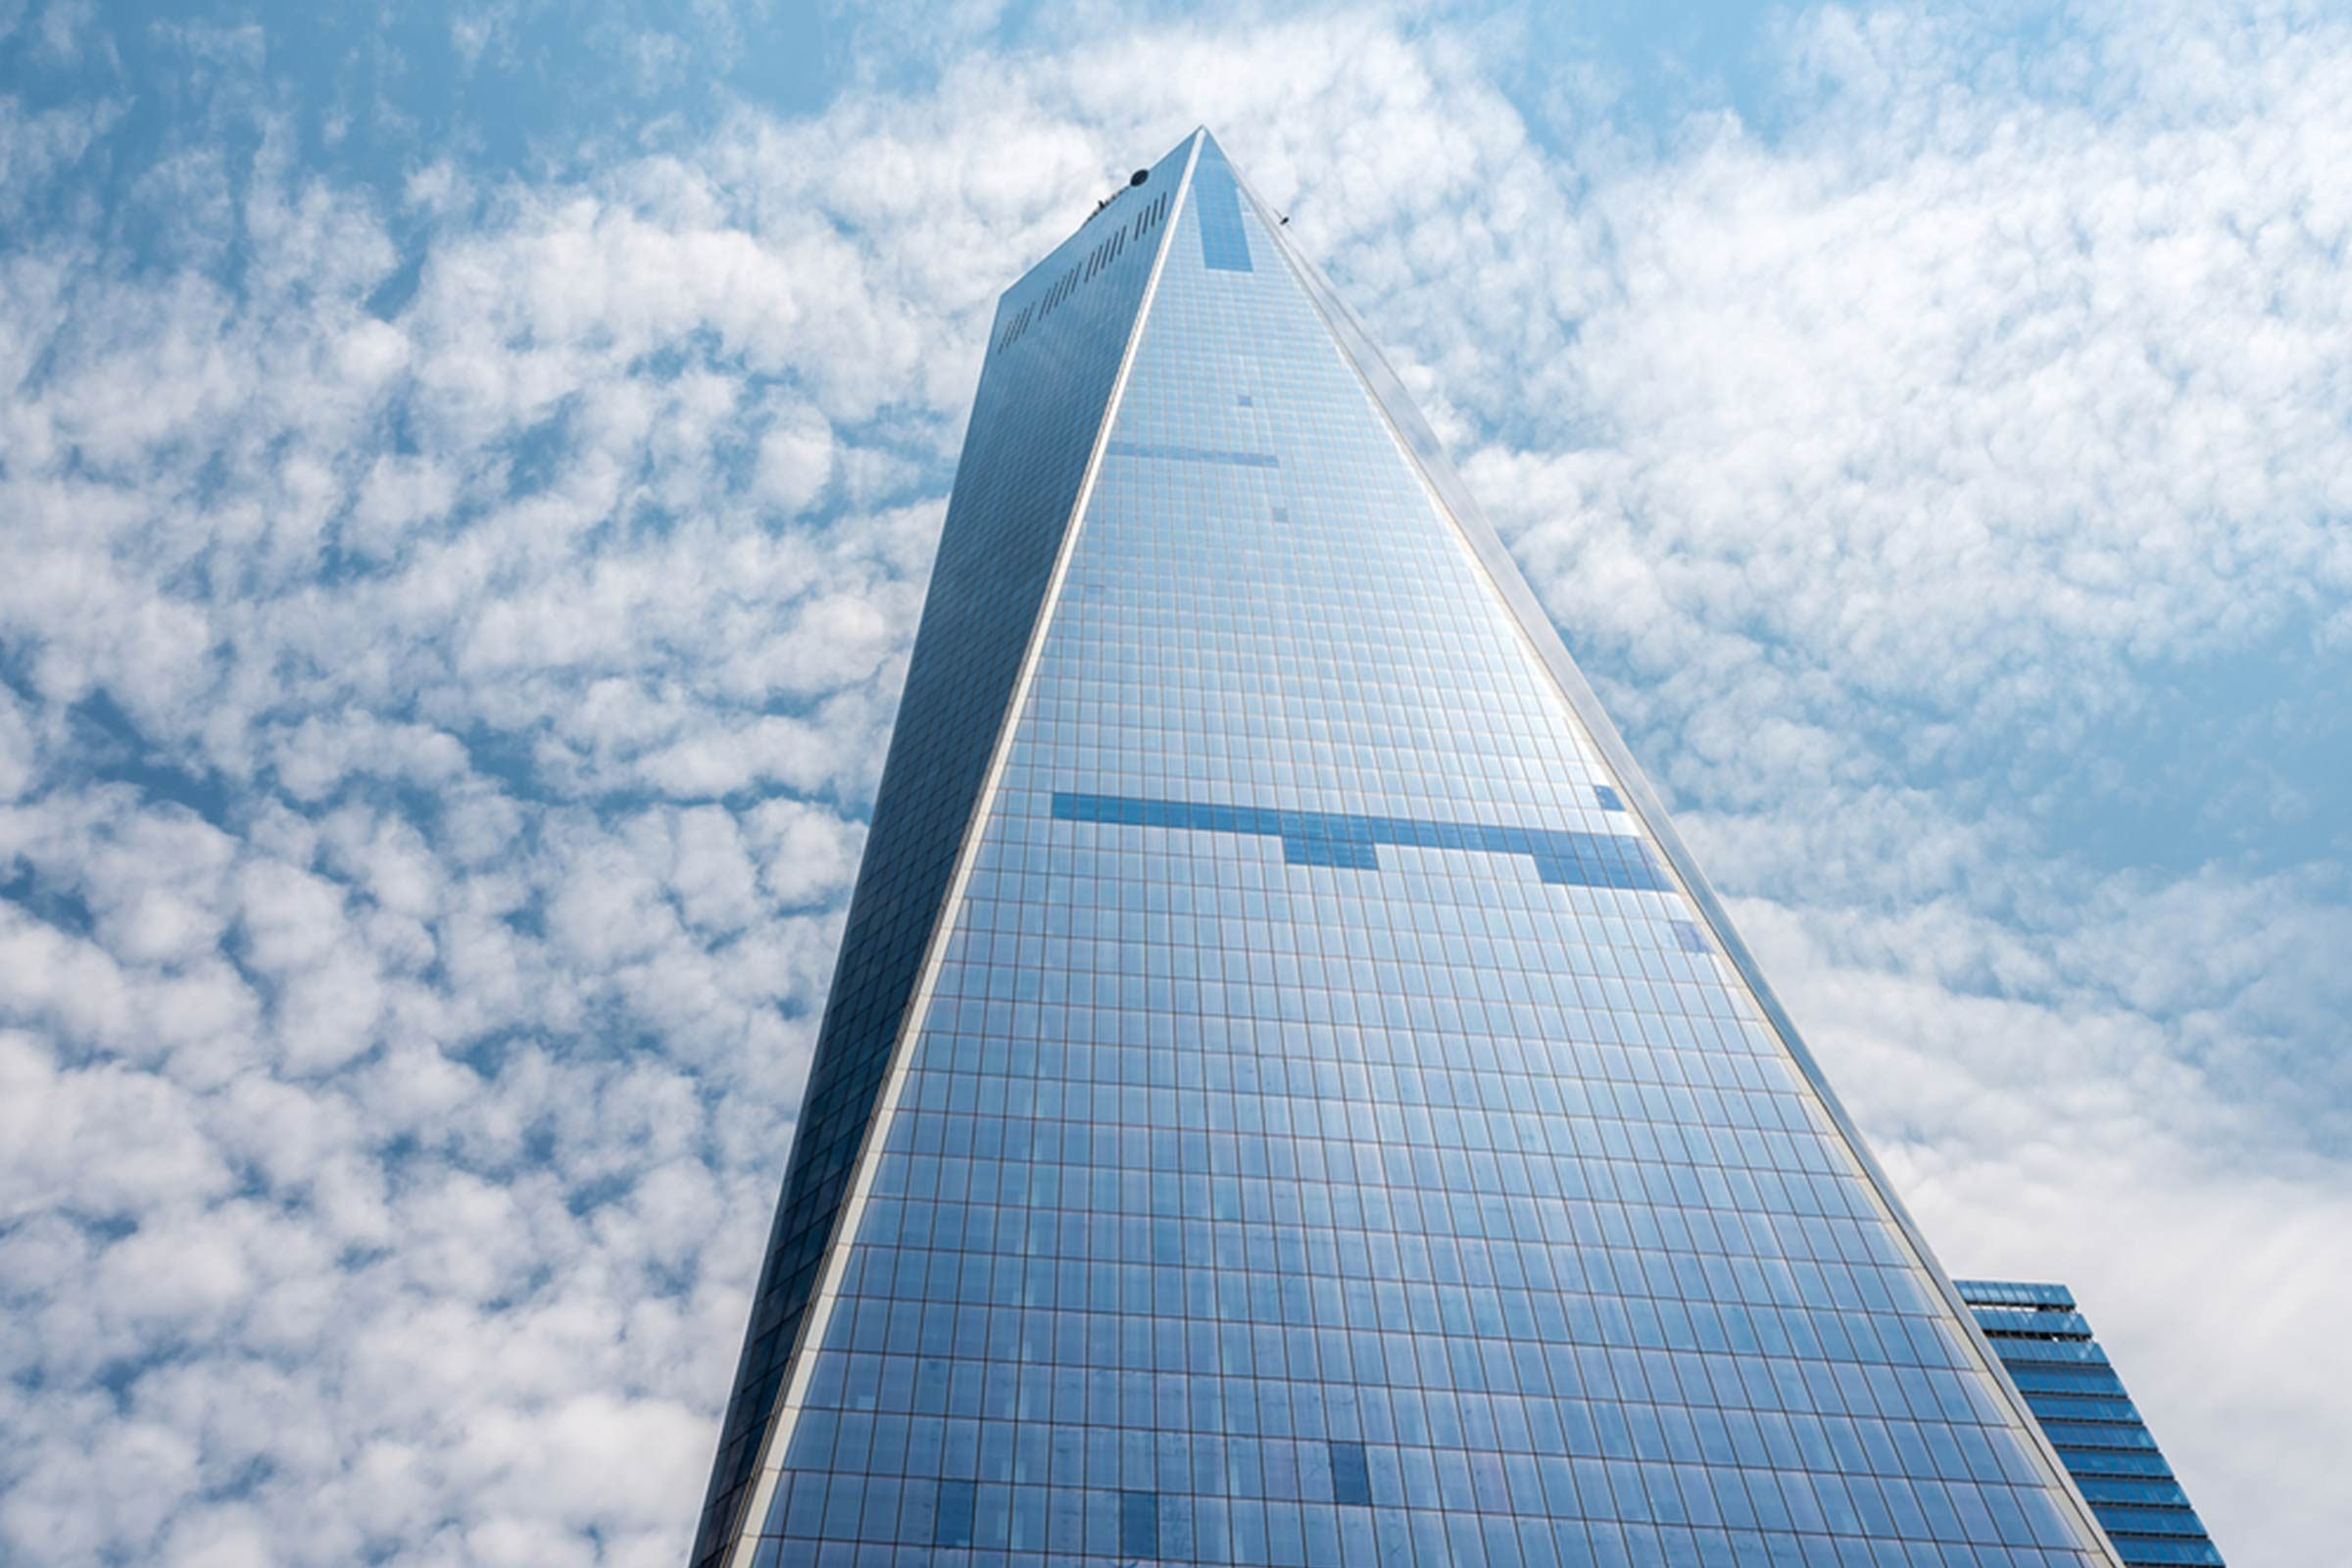 Fascinating Facts About One World Trade Center | Reader's Digest